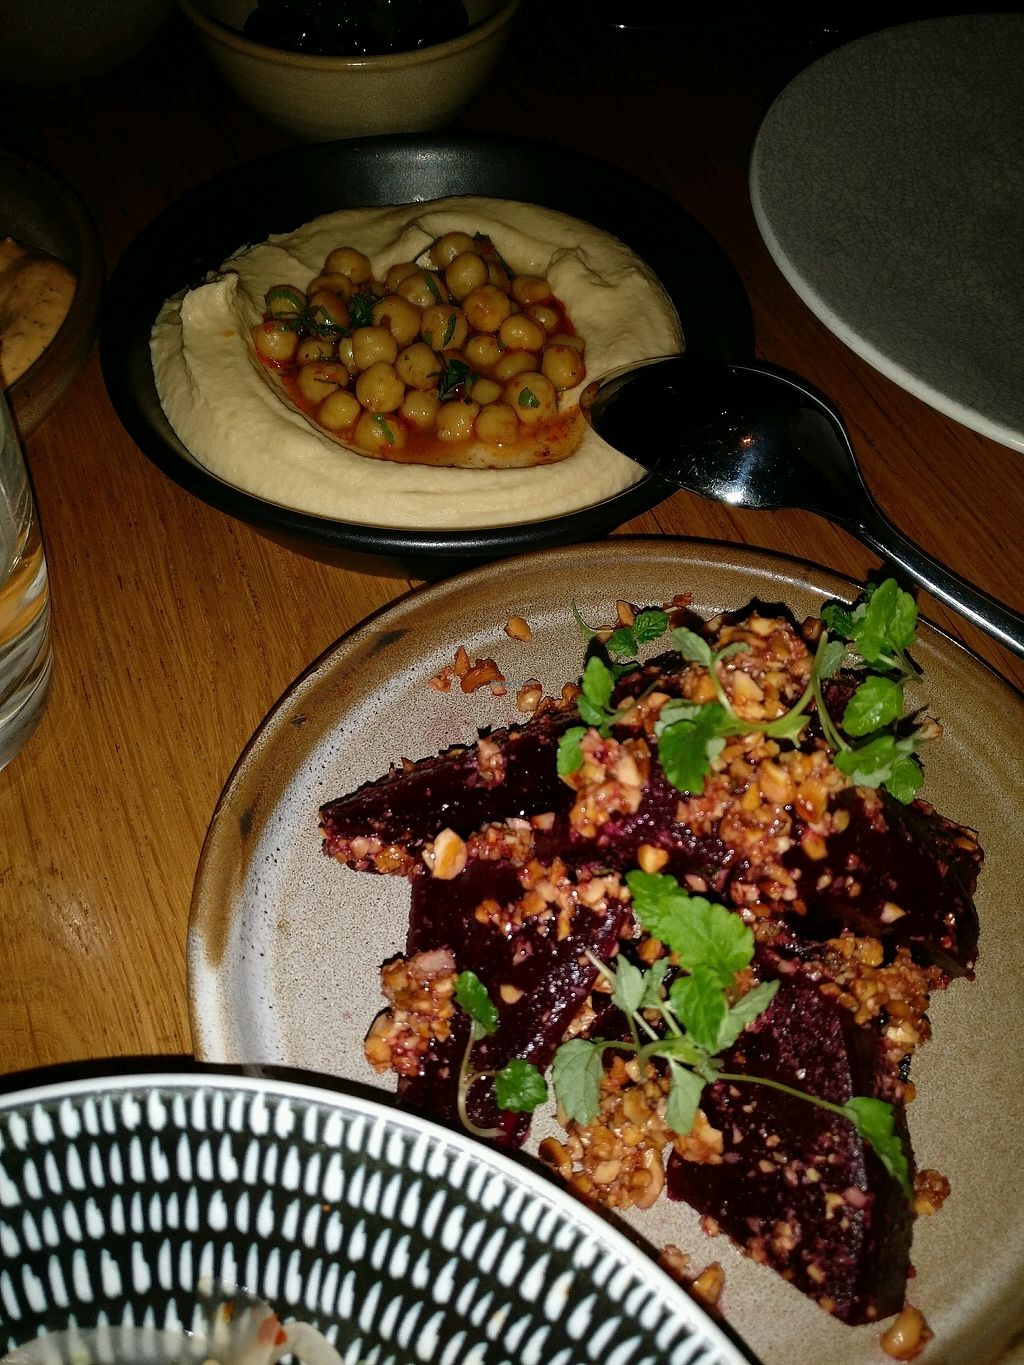 """Photo of Maha Restaurant  by <a href=""""/members/profile/Aloo"""">Aloo</a> <br/>amazing beetroot dish and hummus  <br/> August 27, 2017  - <a href='/contact/abuse/image/34718/297719'>Report</a>"""